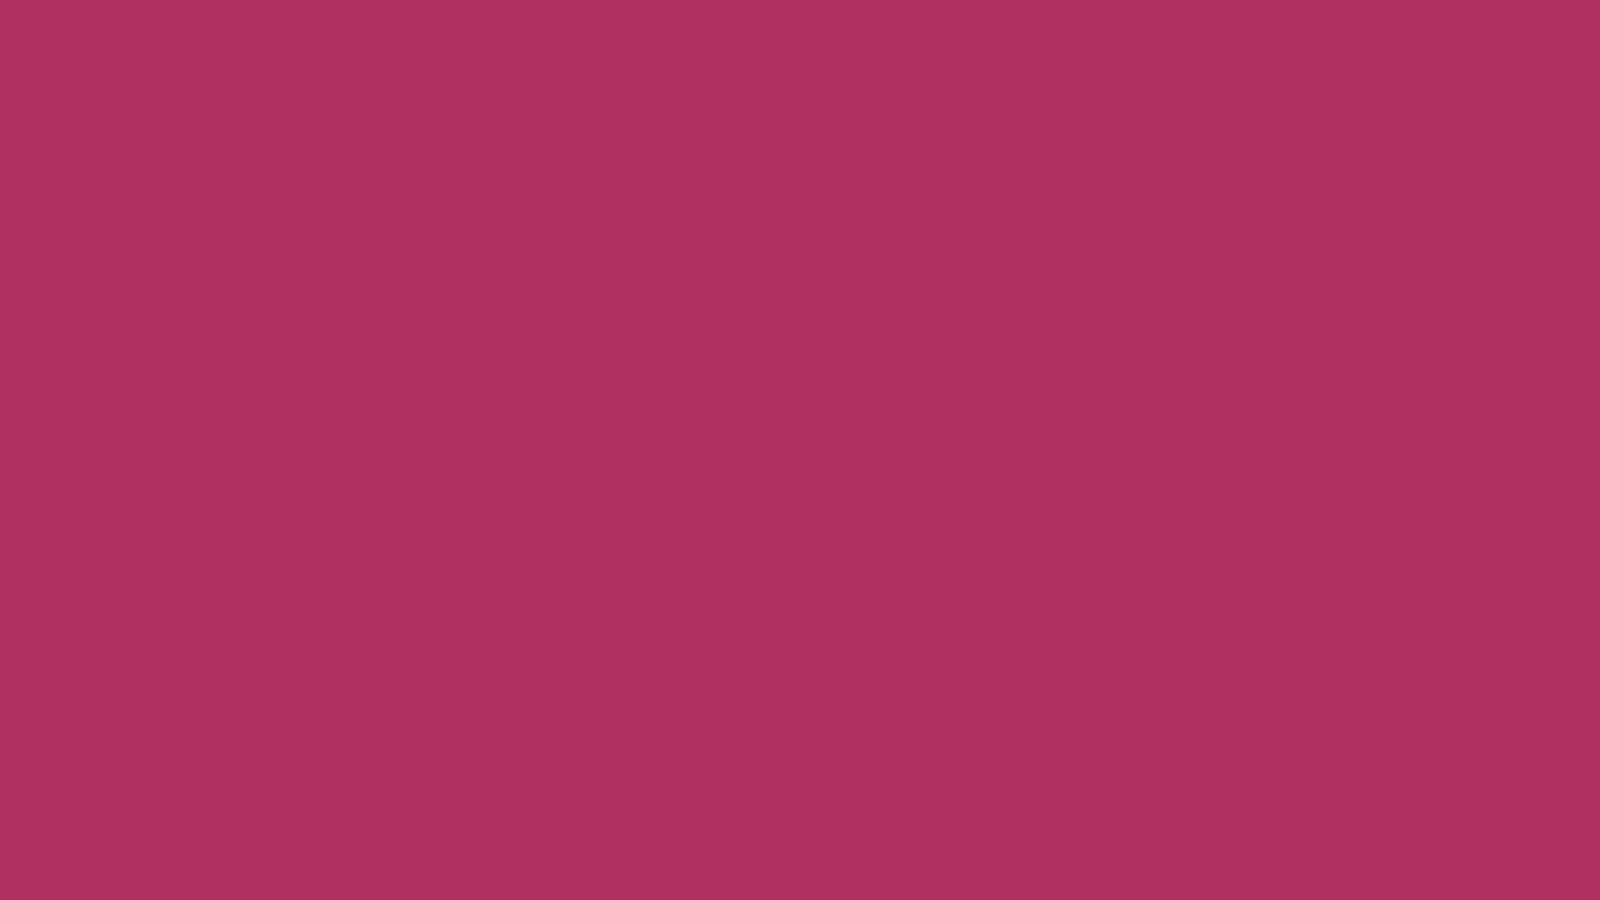 1600x900 Maroon X11 Gui Solid Color Background